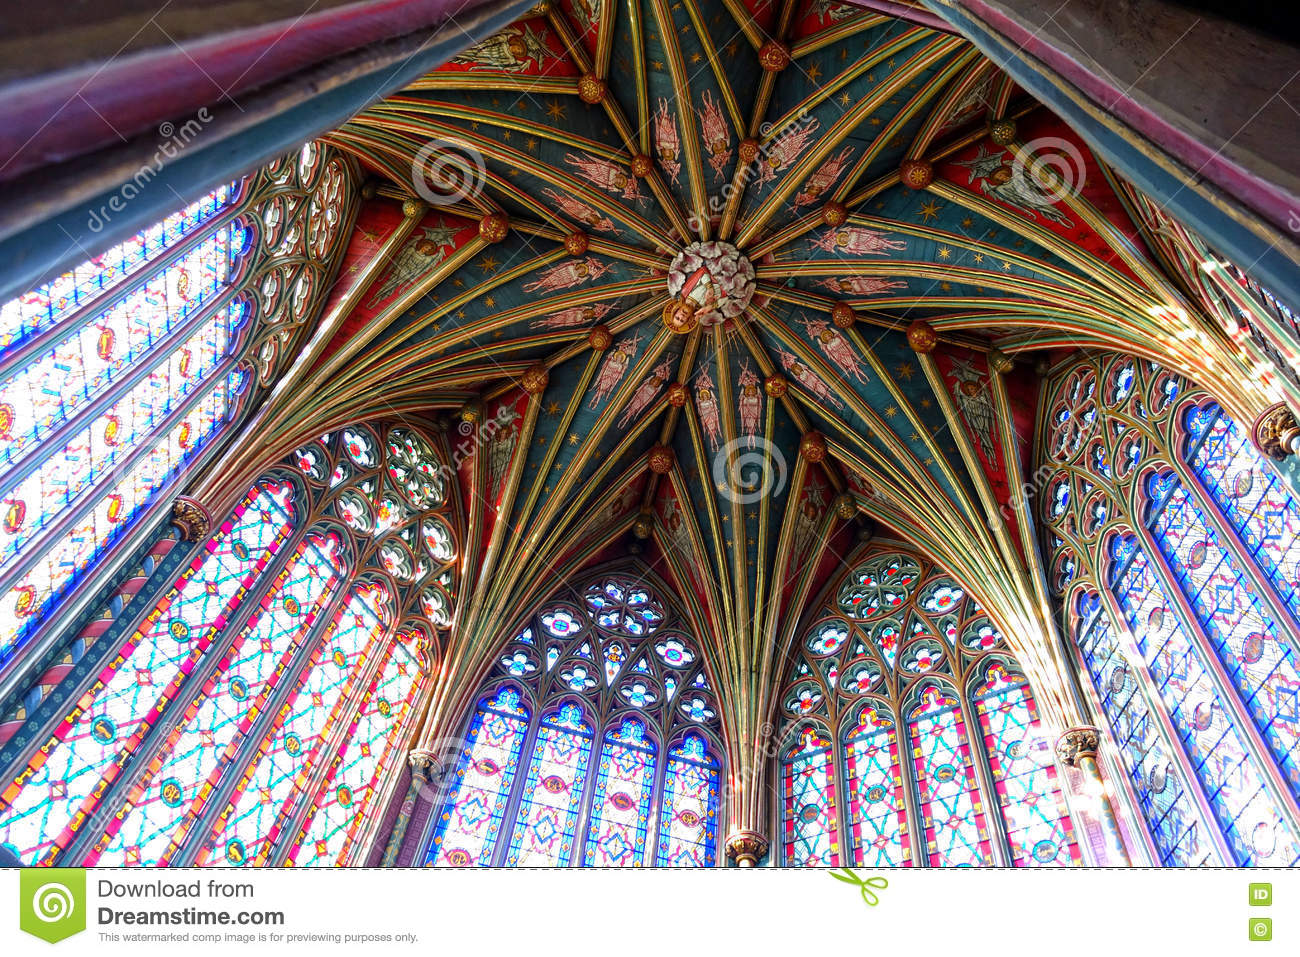 Ely Cathedral oktogon